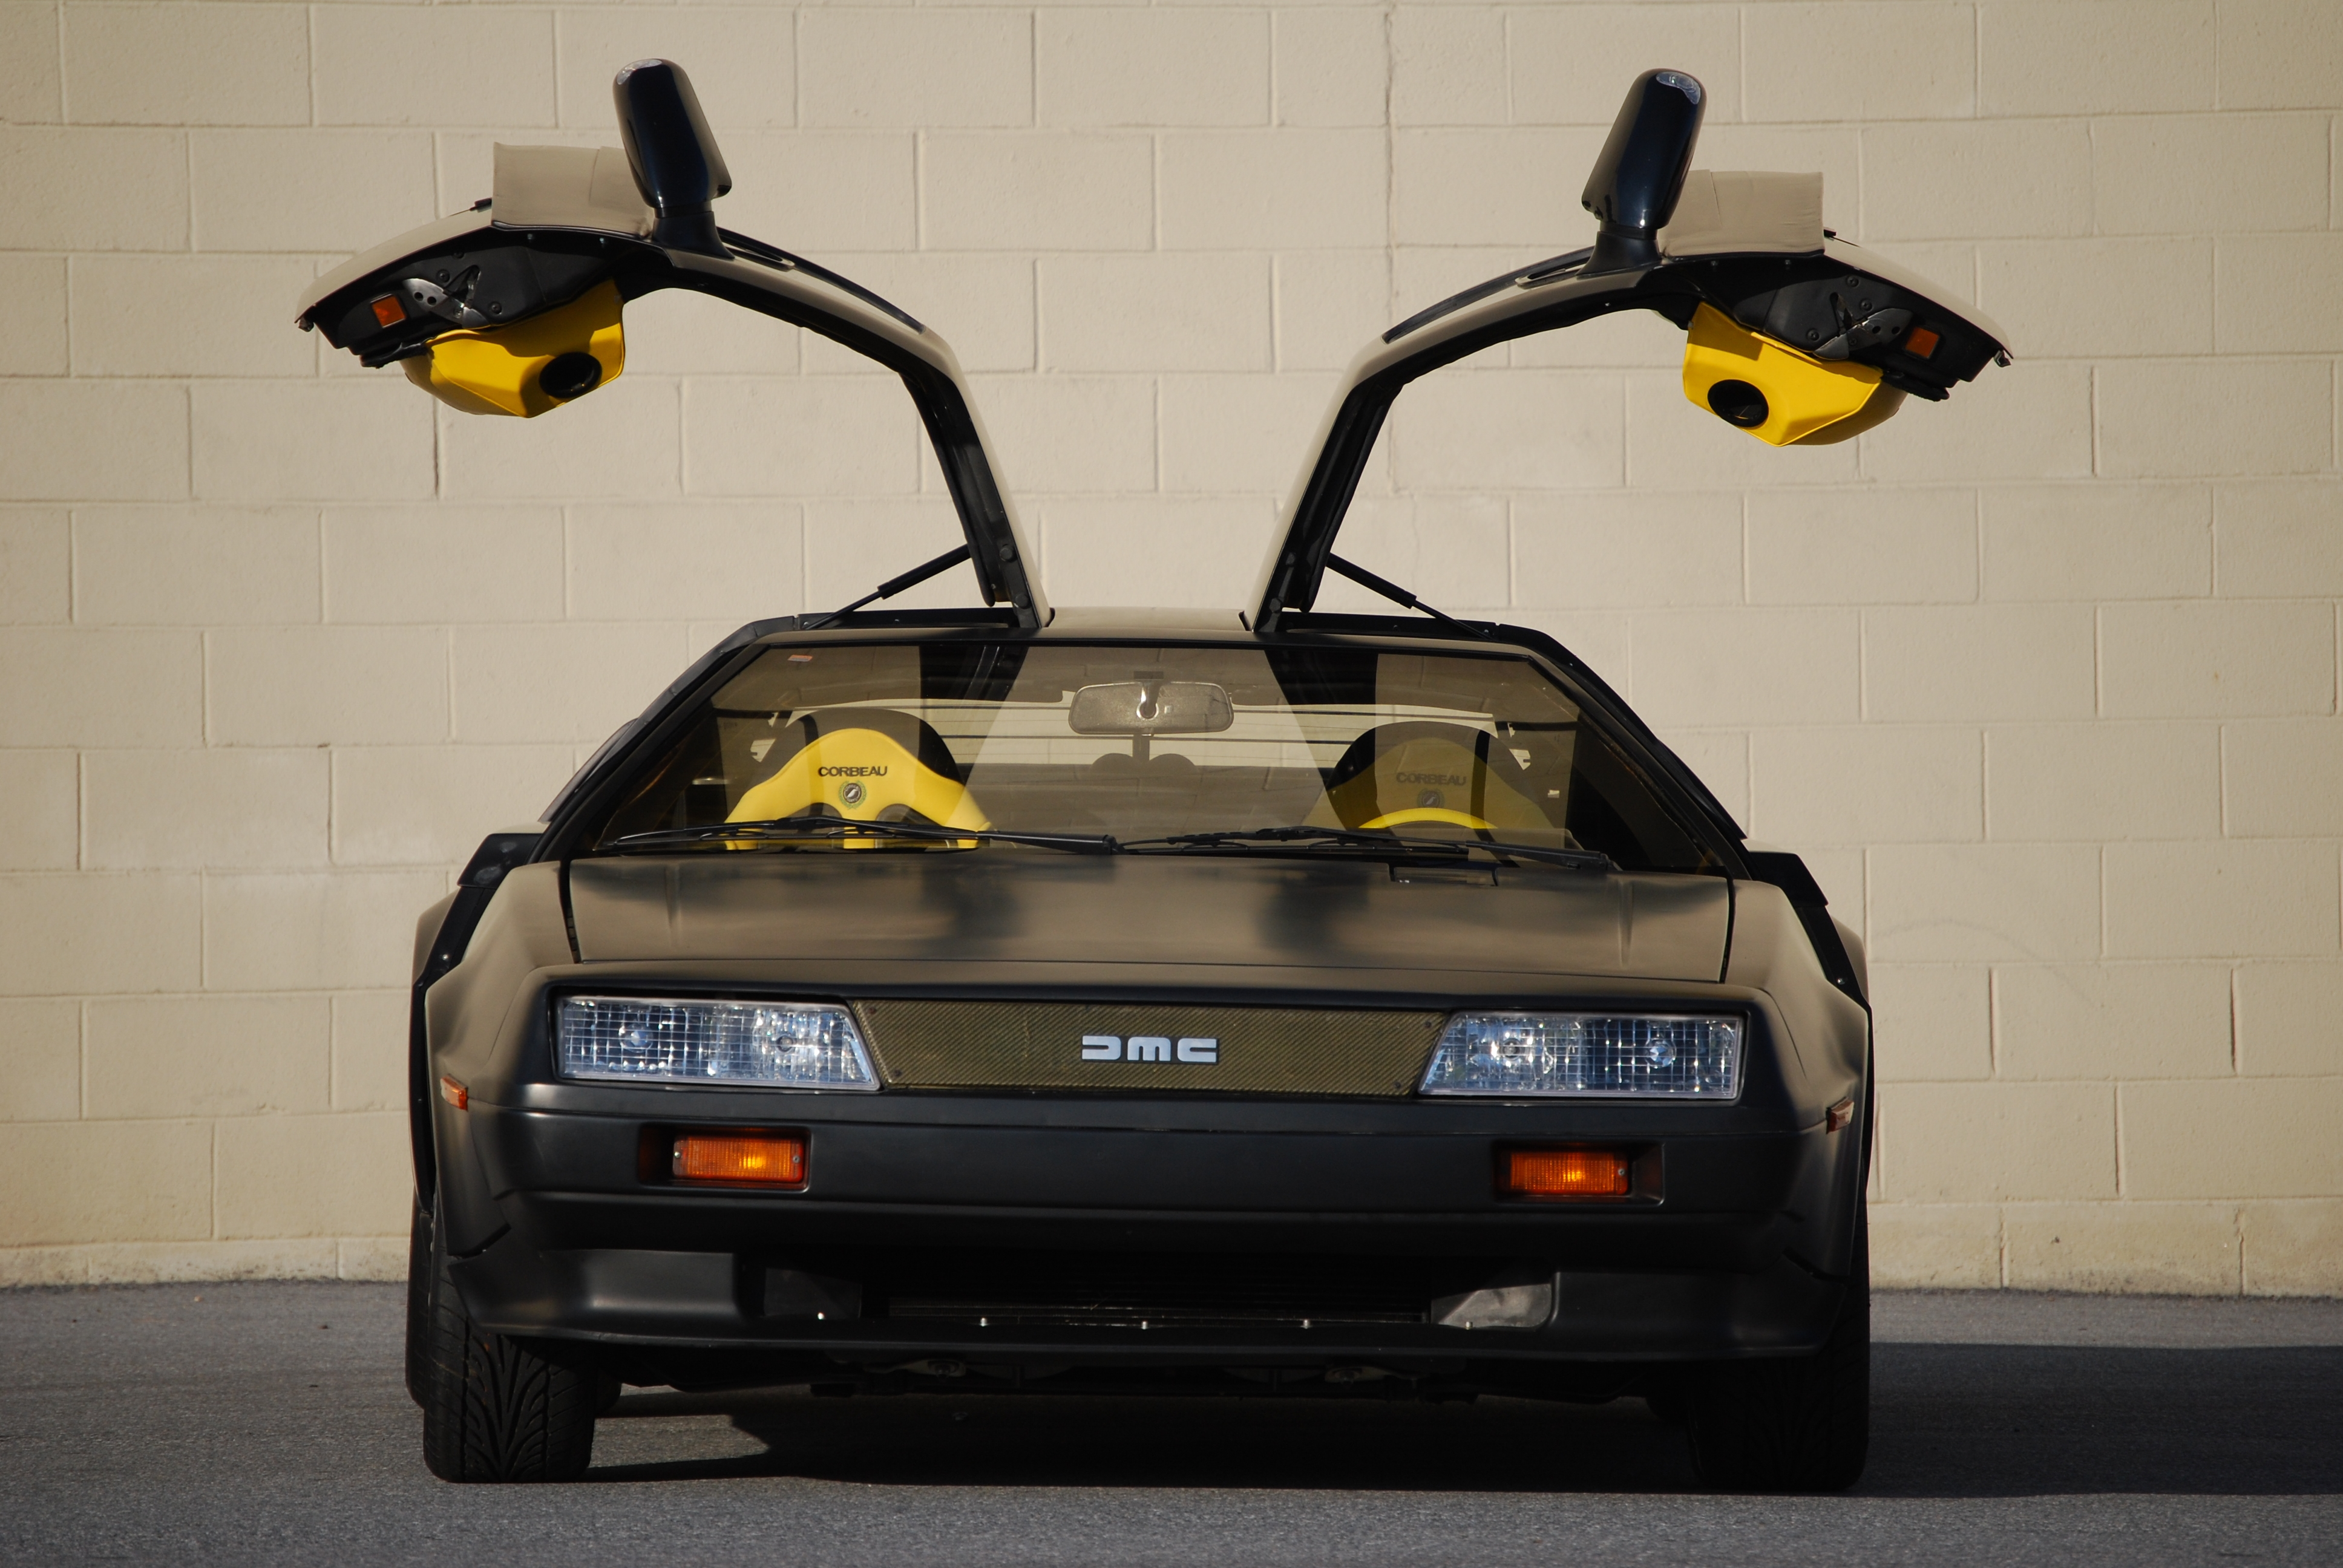 protodelorean 1981 DeLorean DMC-12 8844053